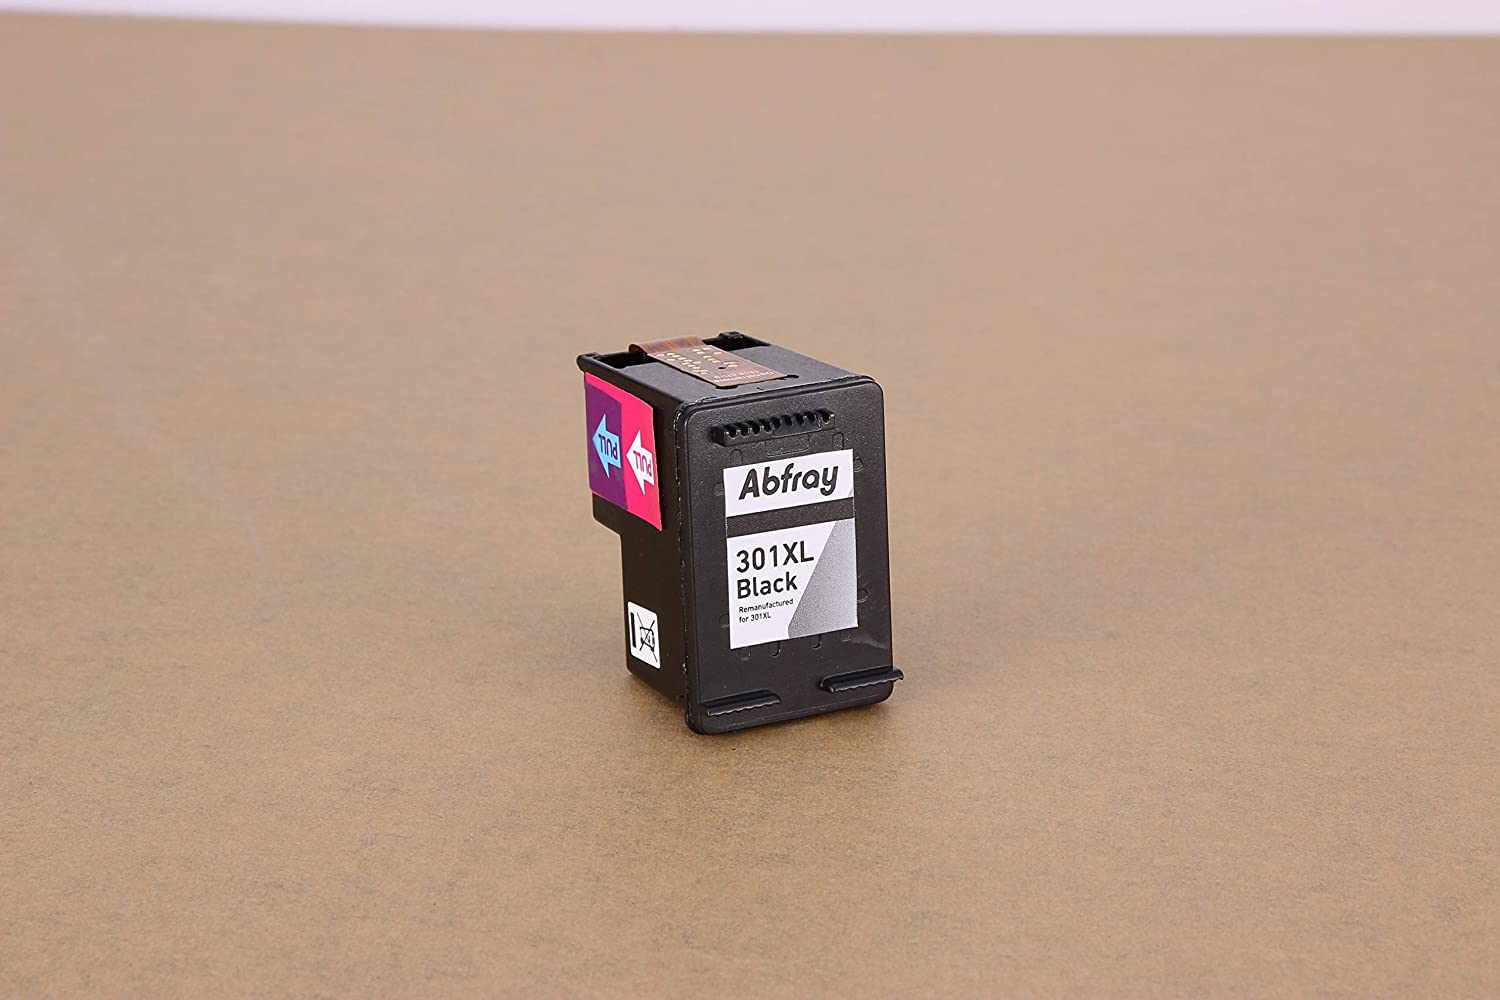 OfficeJet 2620 4630 Envy 4500 4502 4507 5530 Compatible with HP DeskJet 1050a 1510 2050 2510 2540 2X Black Abfray 301XL Replacement for HP 301 XL Ink Cartridges